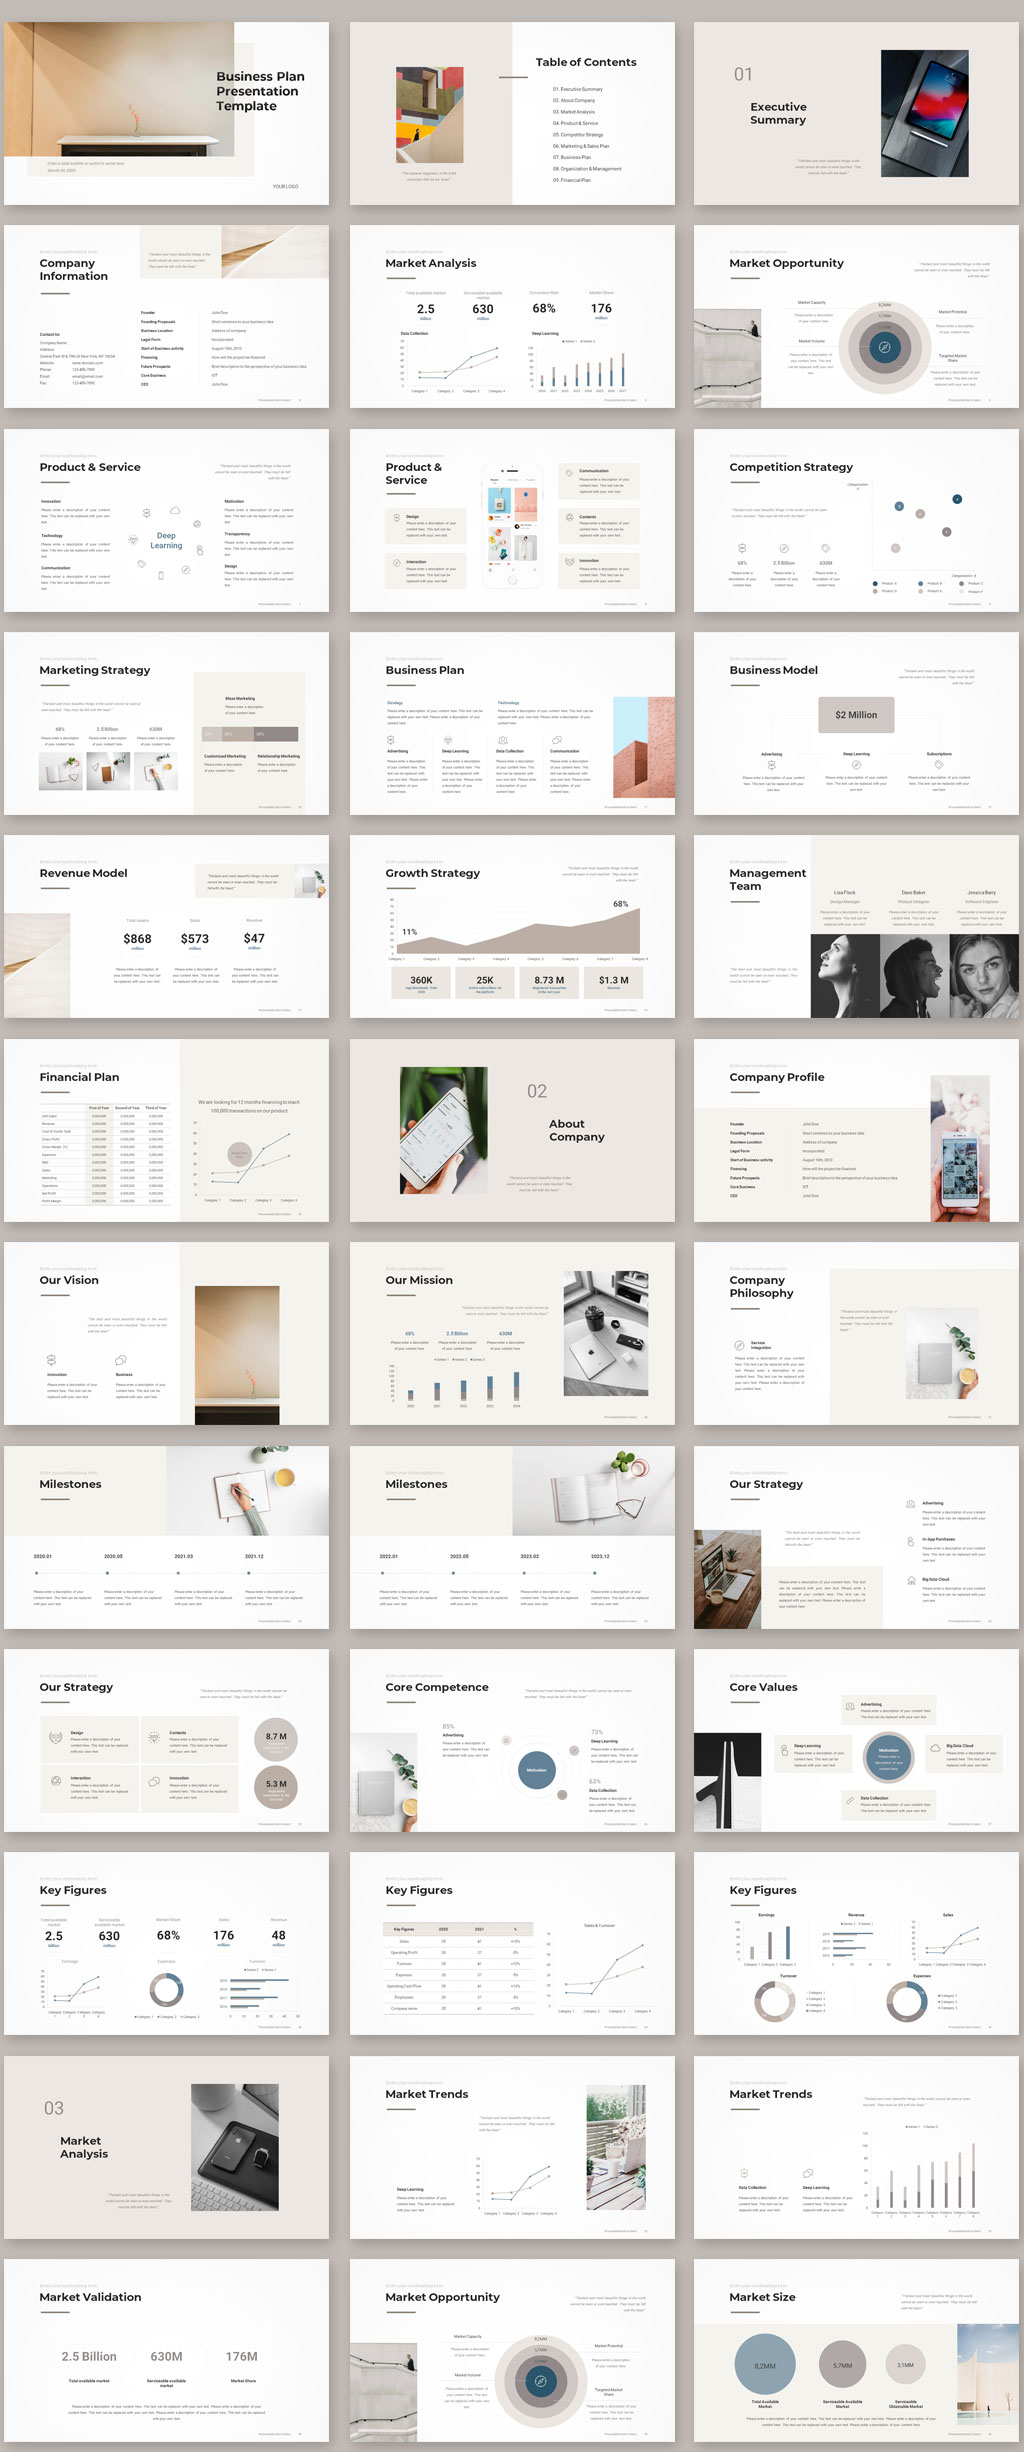 Business-Plan-PowerPoint-Template-Preview1